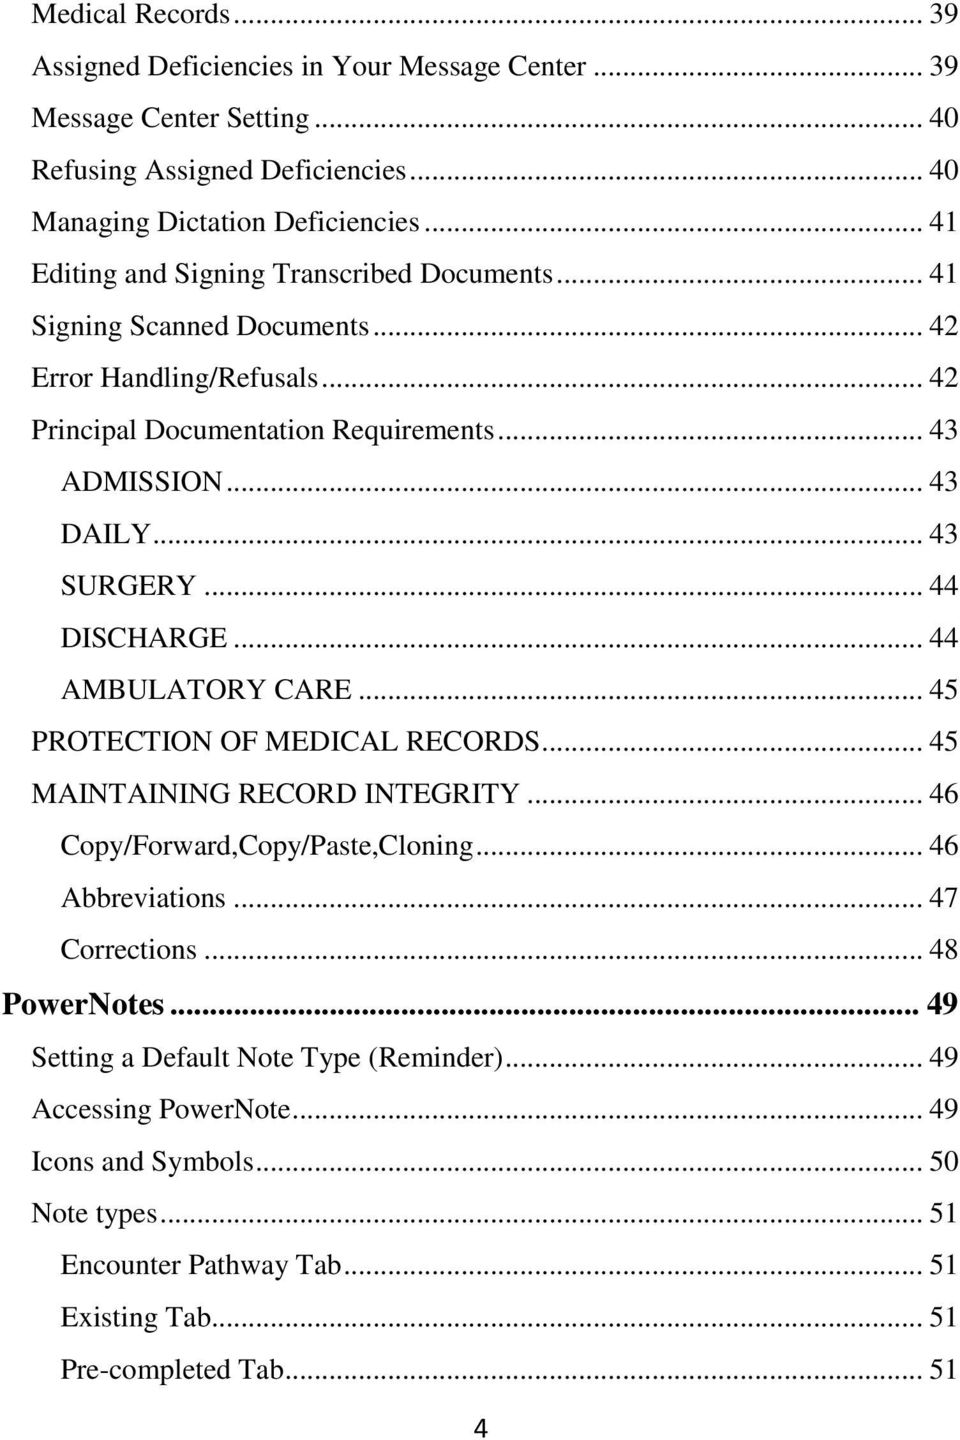 Provider Quick Reference Emr Guide Pdf